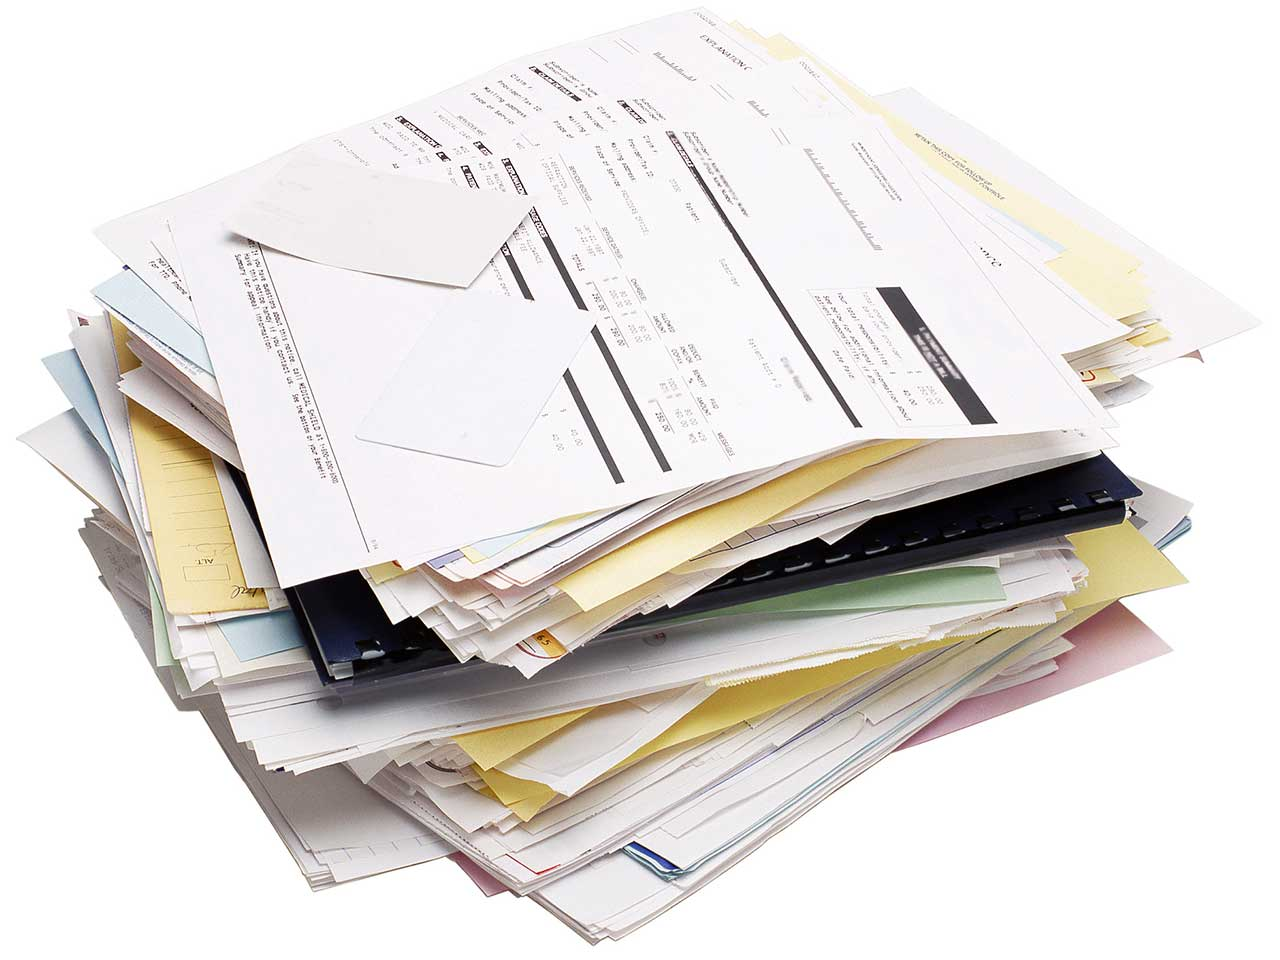 Piles of bills and debts